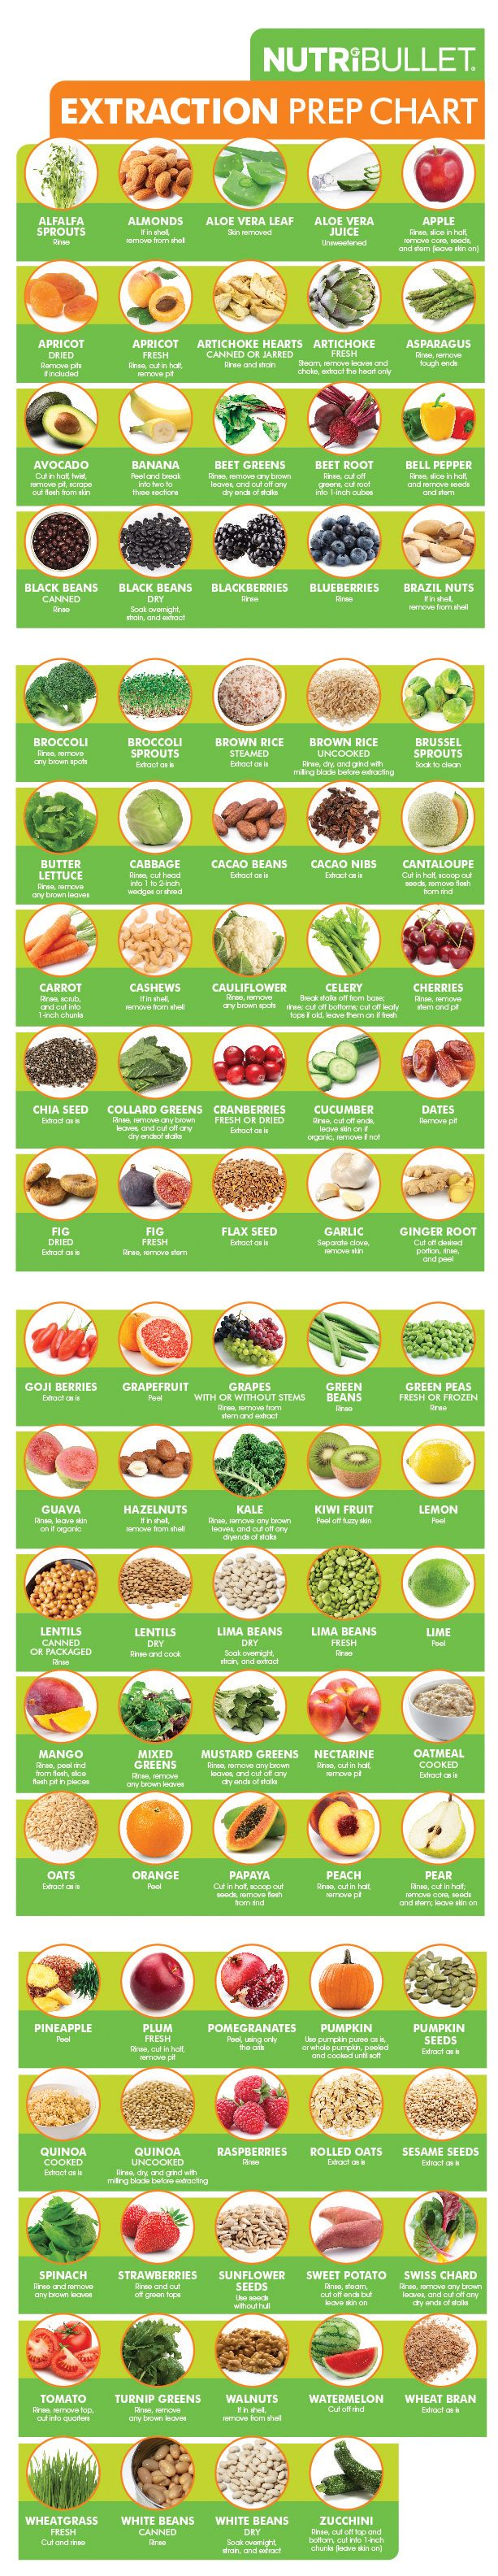 Wondering which fruits and/or vegetables you should peel or de-seed before putting them in your NutriBullet? Worry no more - this chart is here to help! With a long list of various fruits and vegetabl...